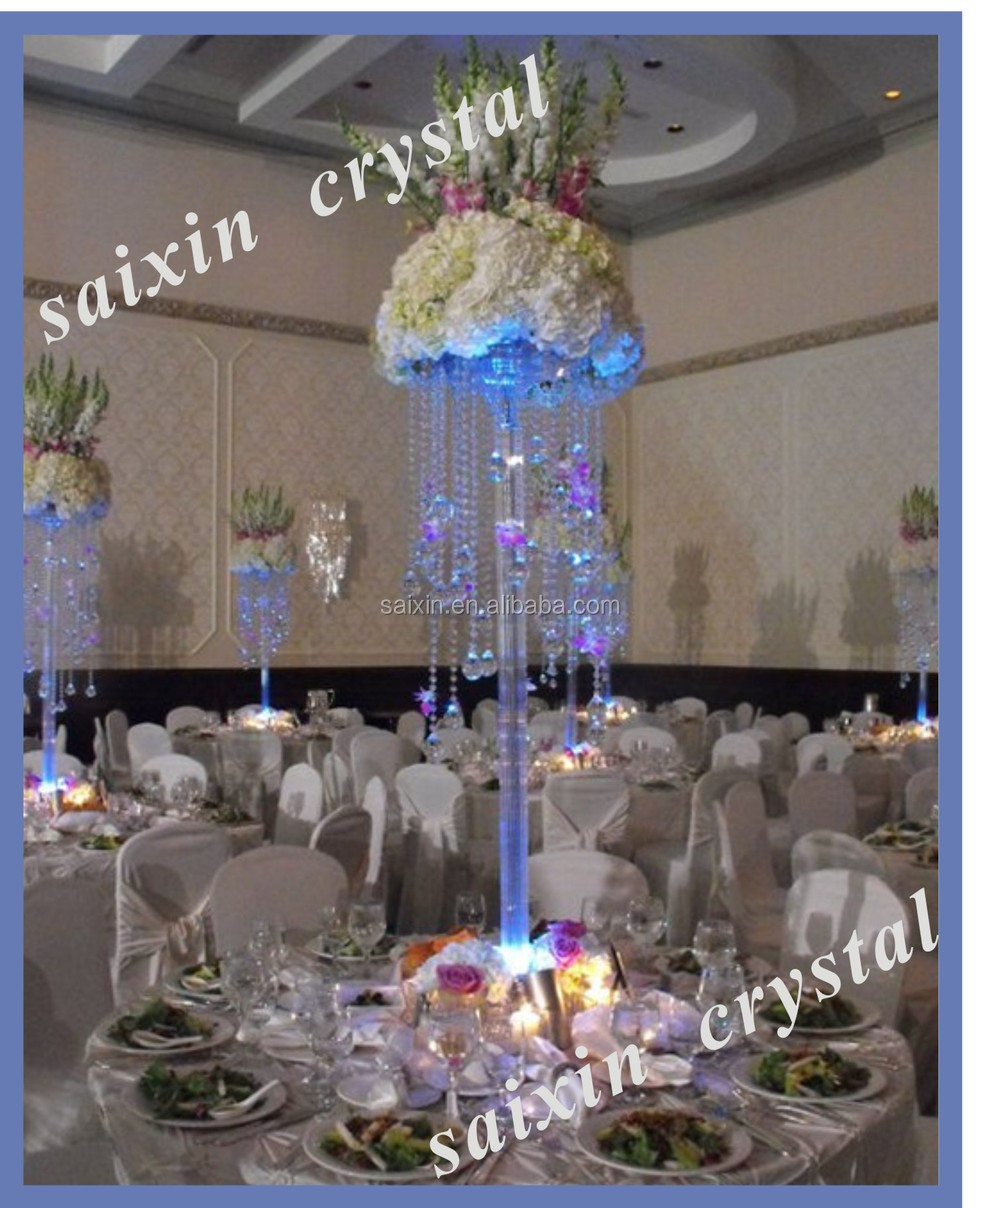 Wedding decoration alibaba choice image wedding dress decoration guangzhou wedding market wholesale wedding decoration buy guangzhou wedding market wholesale wedding decoration more junglespirit choice junglespirit Images